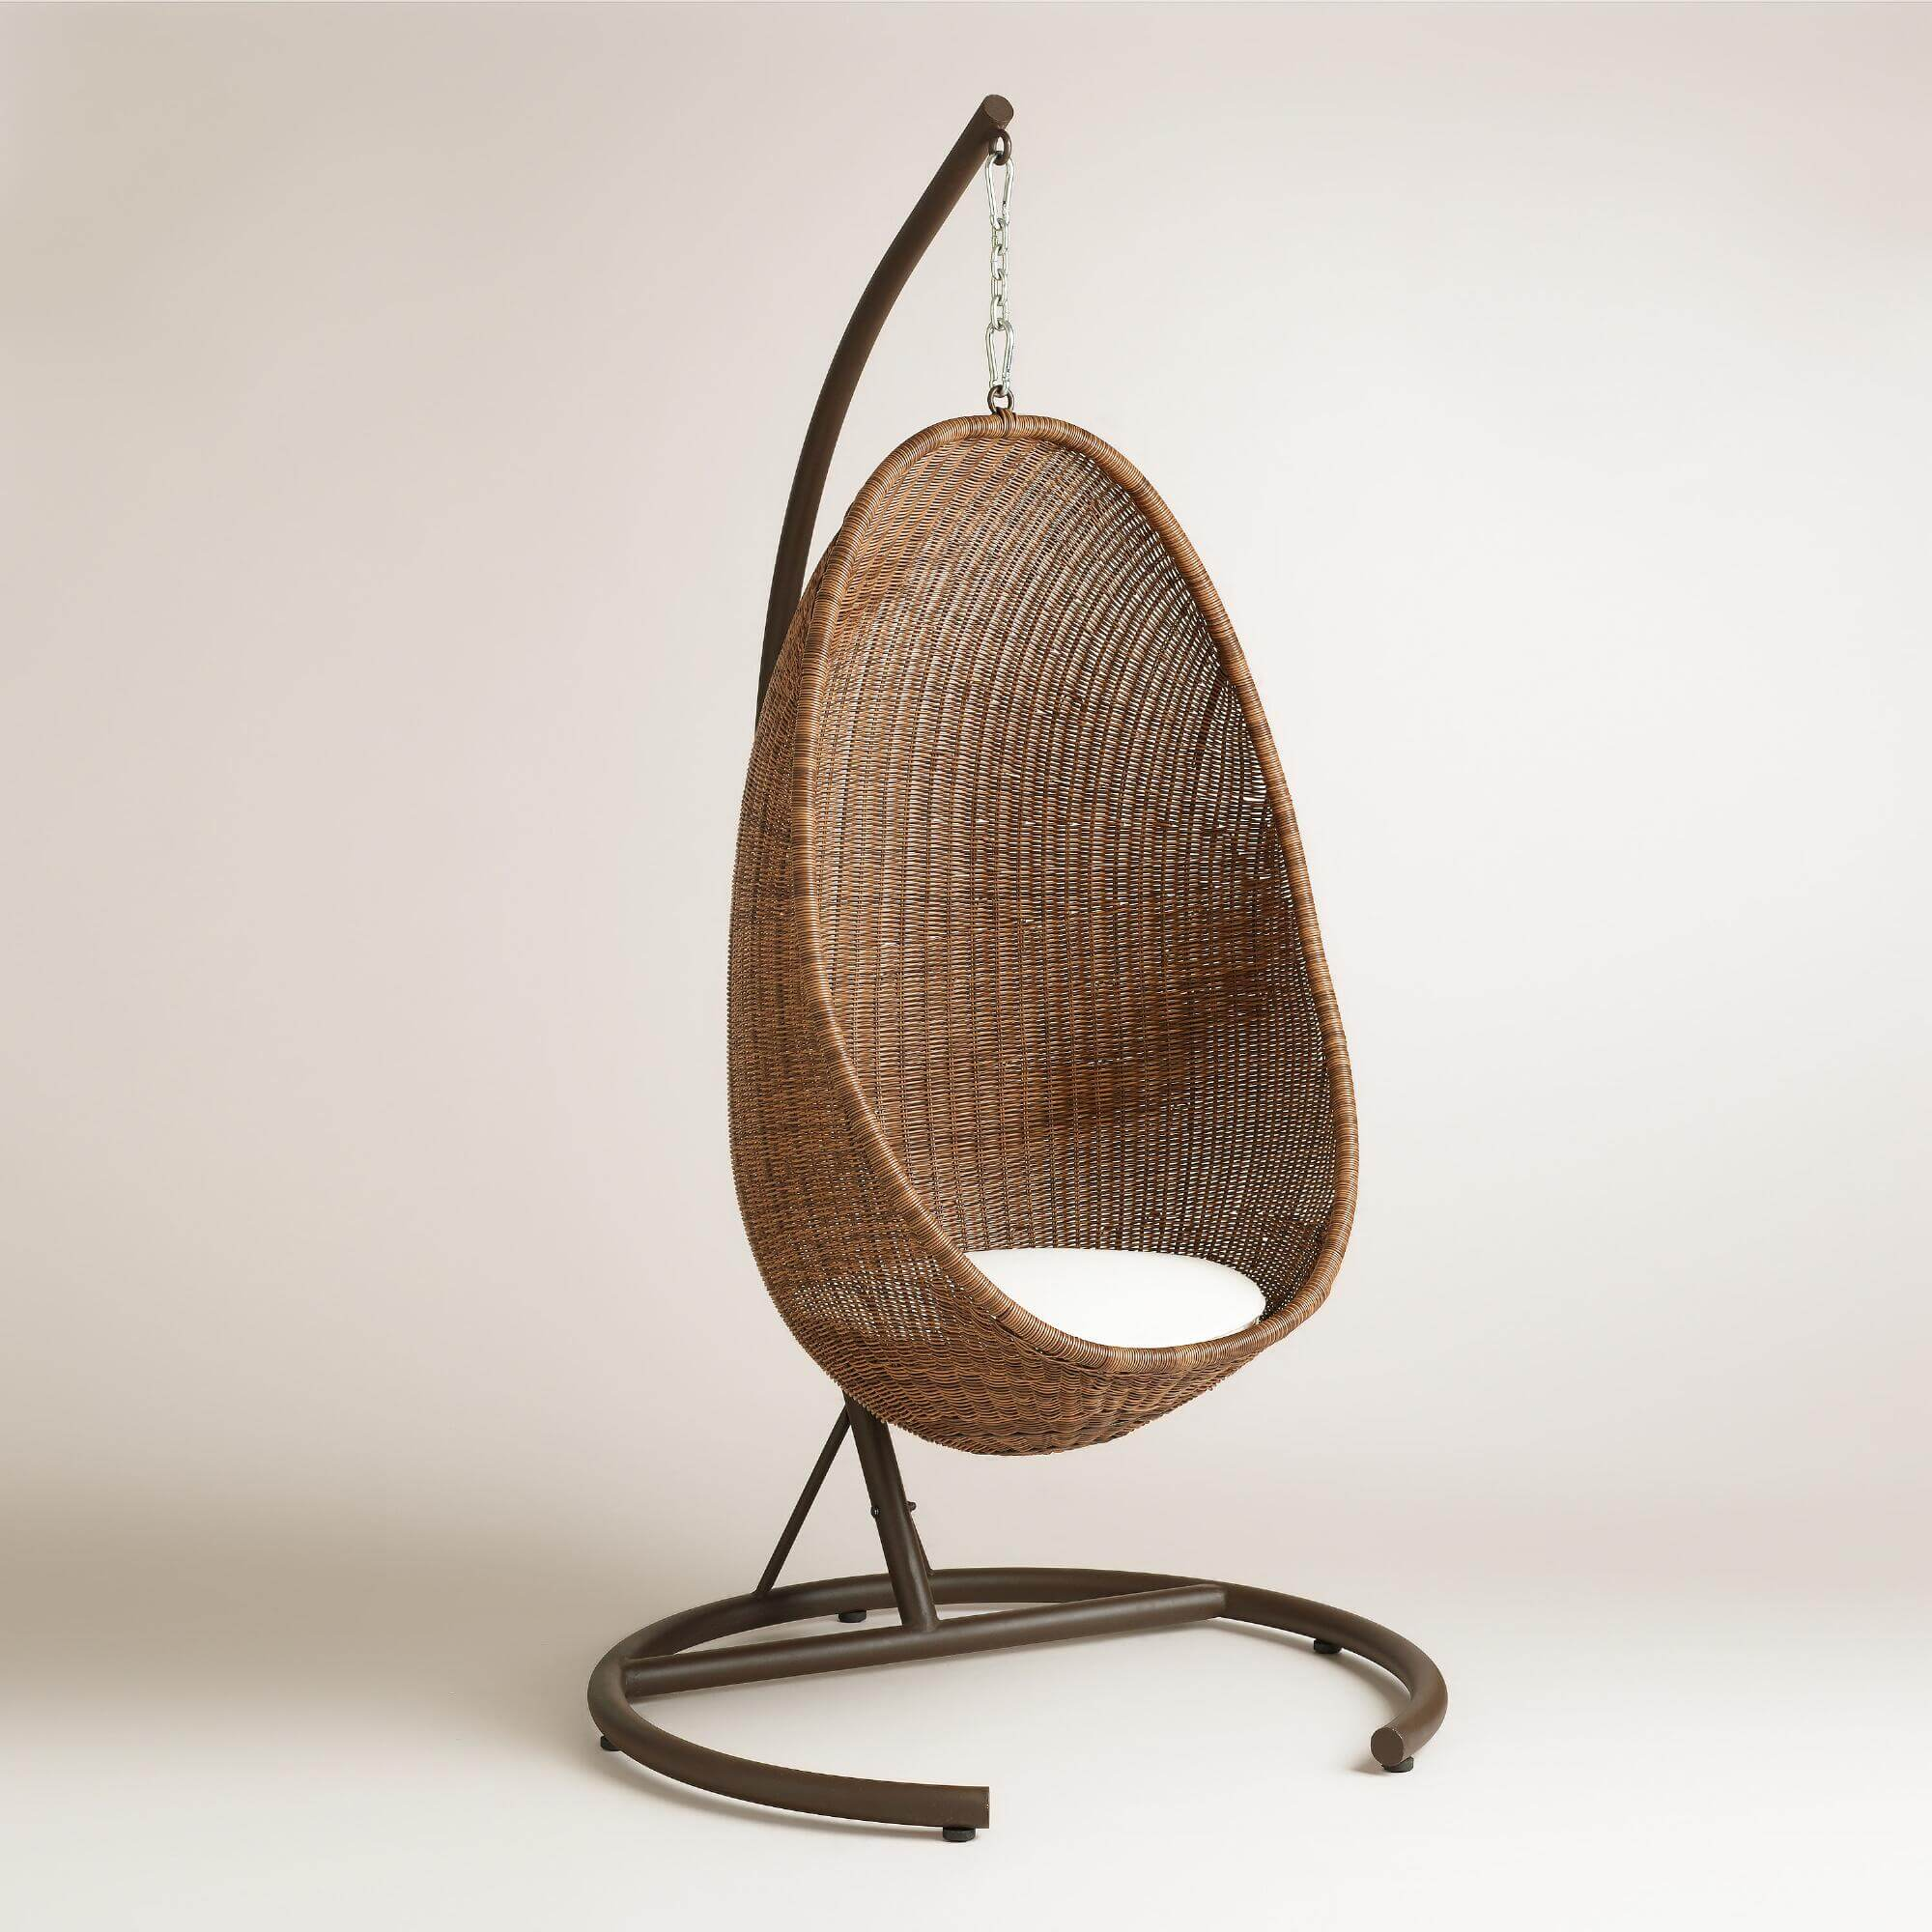 Egg Shaped Chairs Best Hanging Chair Reviews And Guide The Hammock Expert